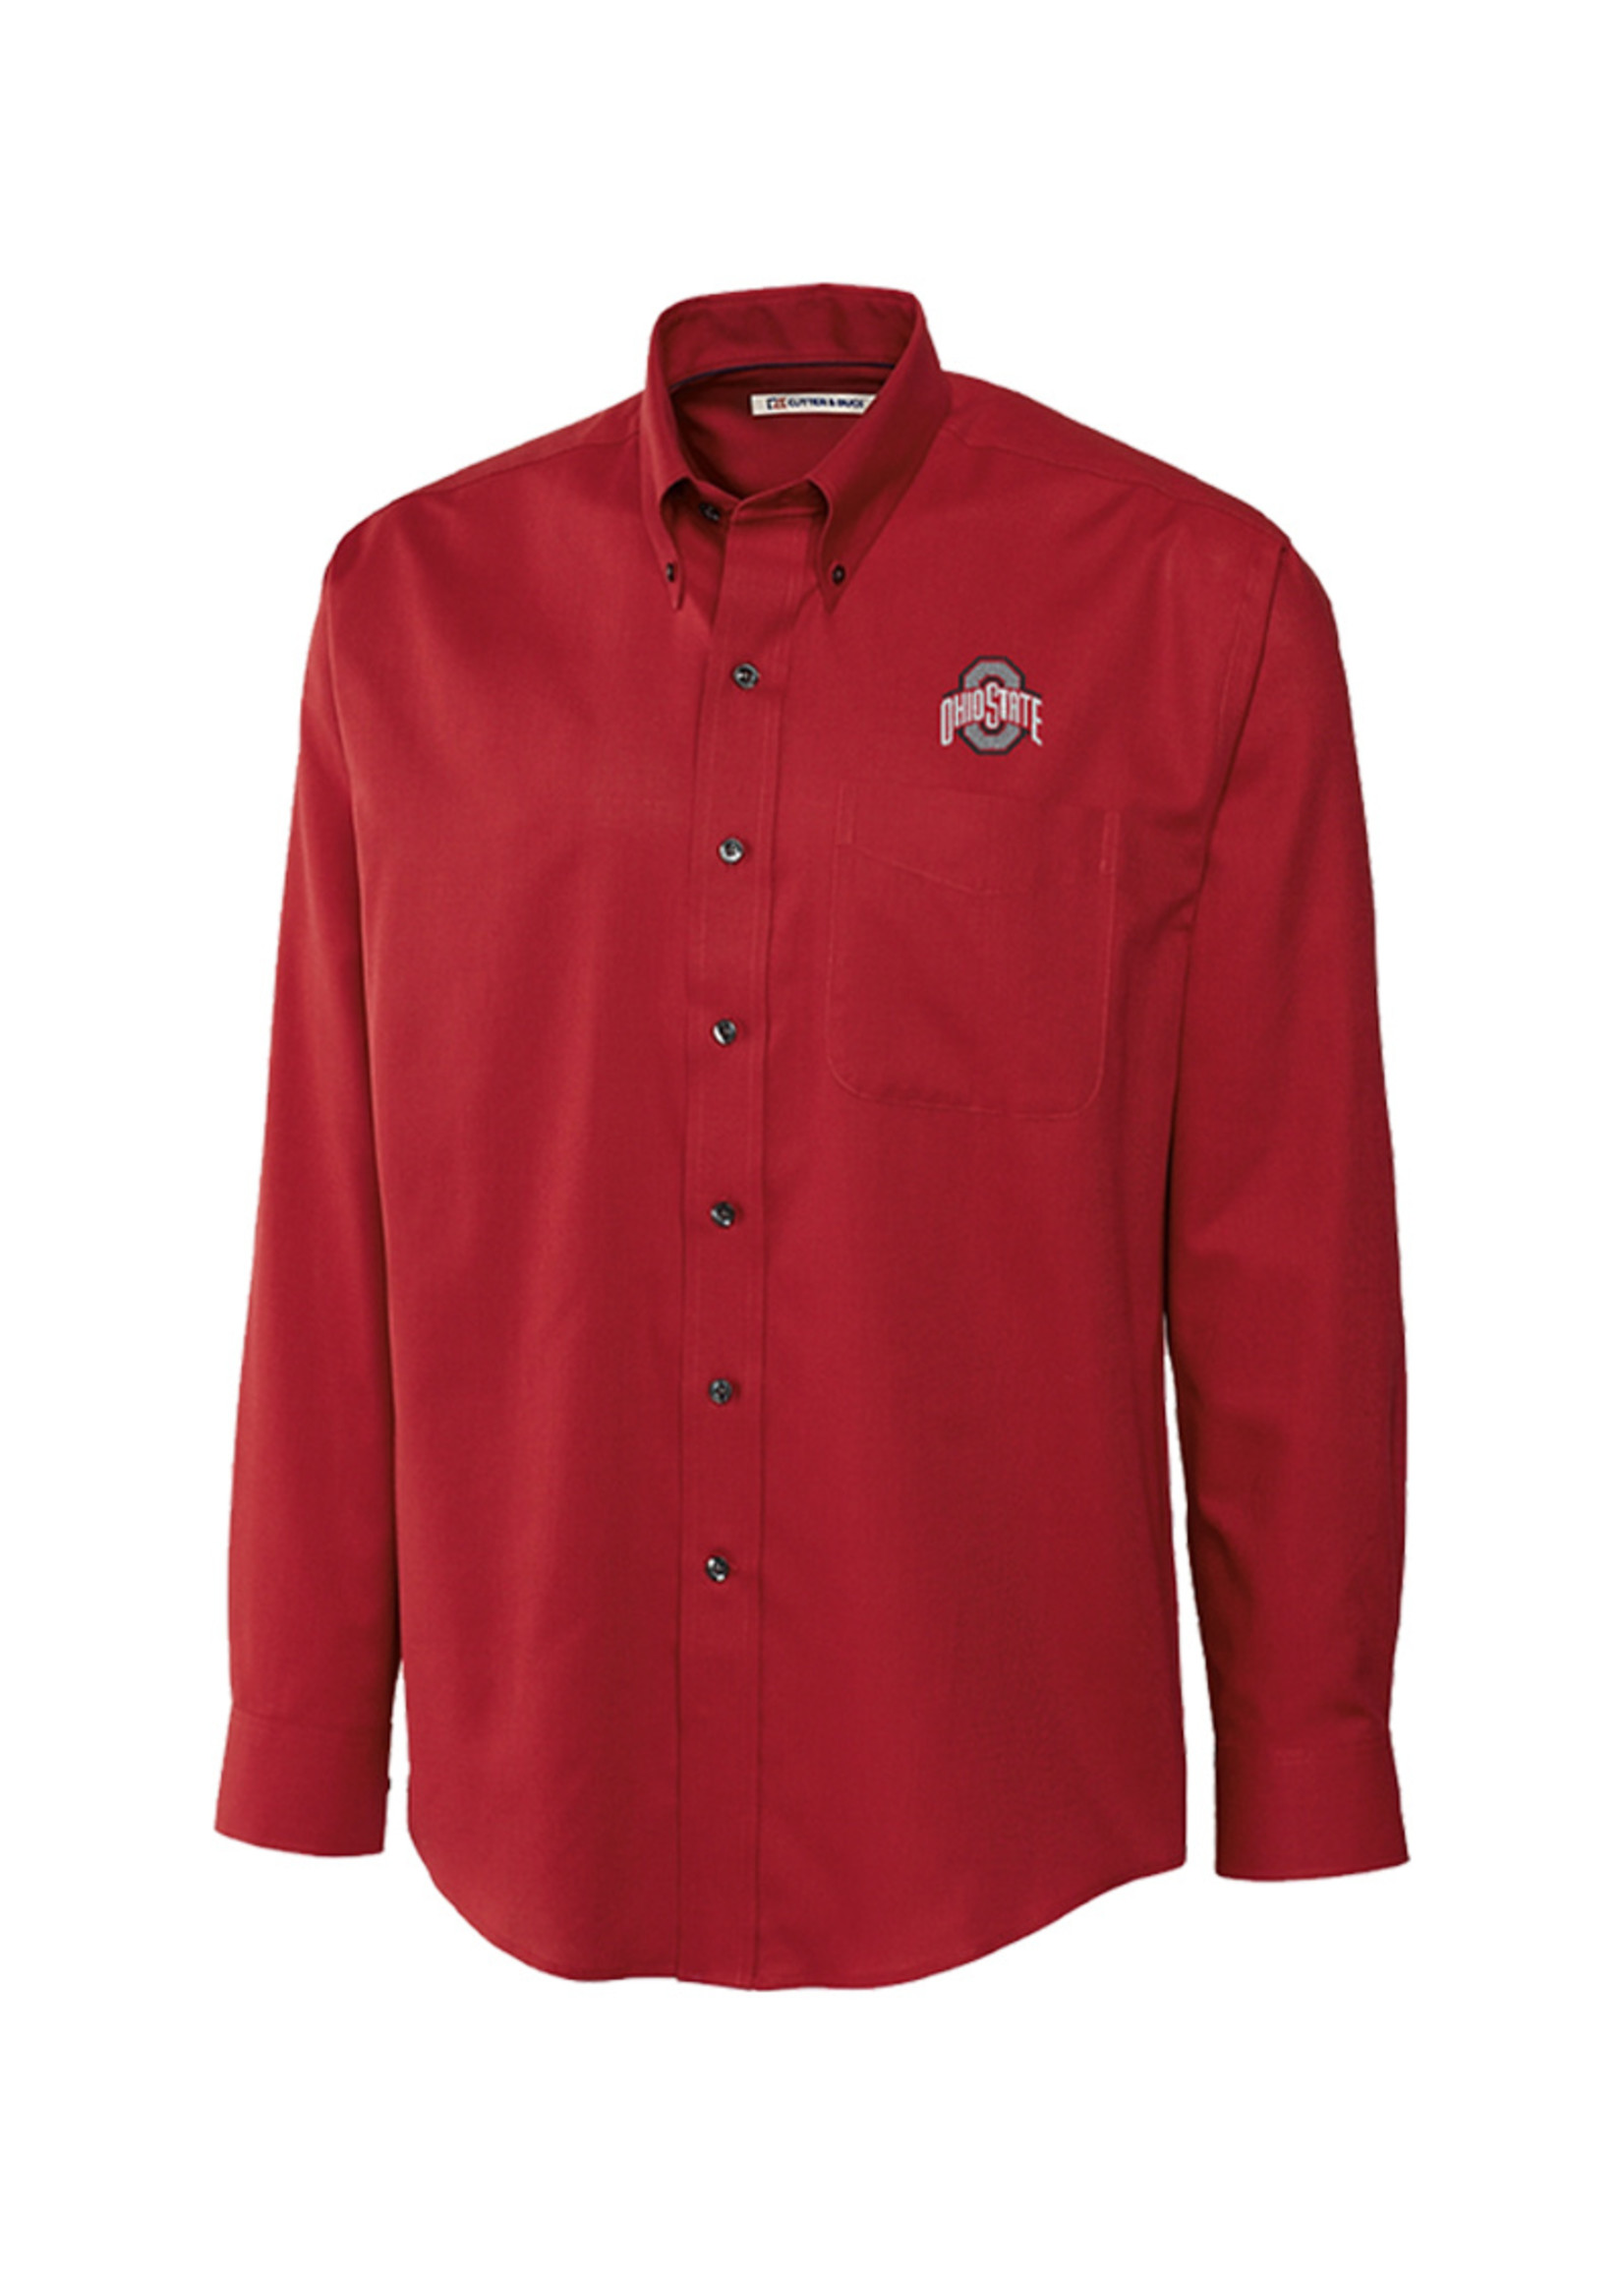 Cutter & Buck Ohio State University Long Sleeve Epic Easy Care Nailshead Shirt